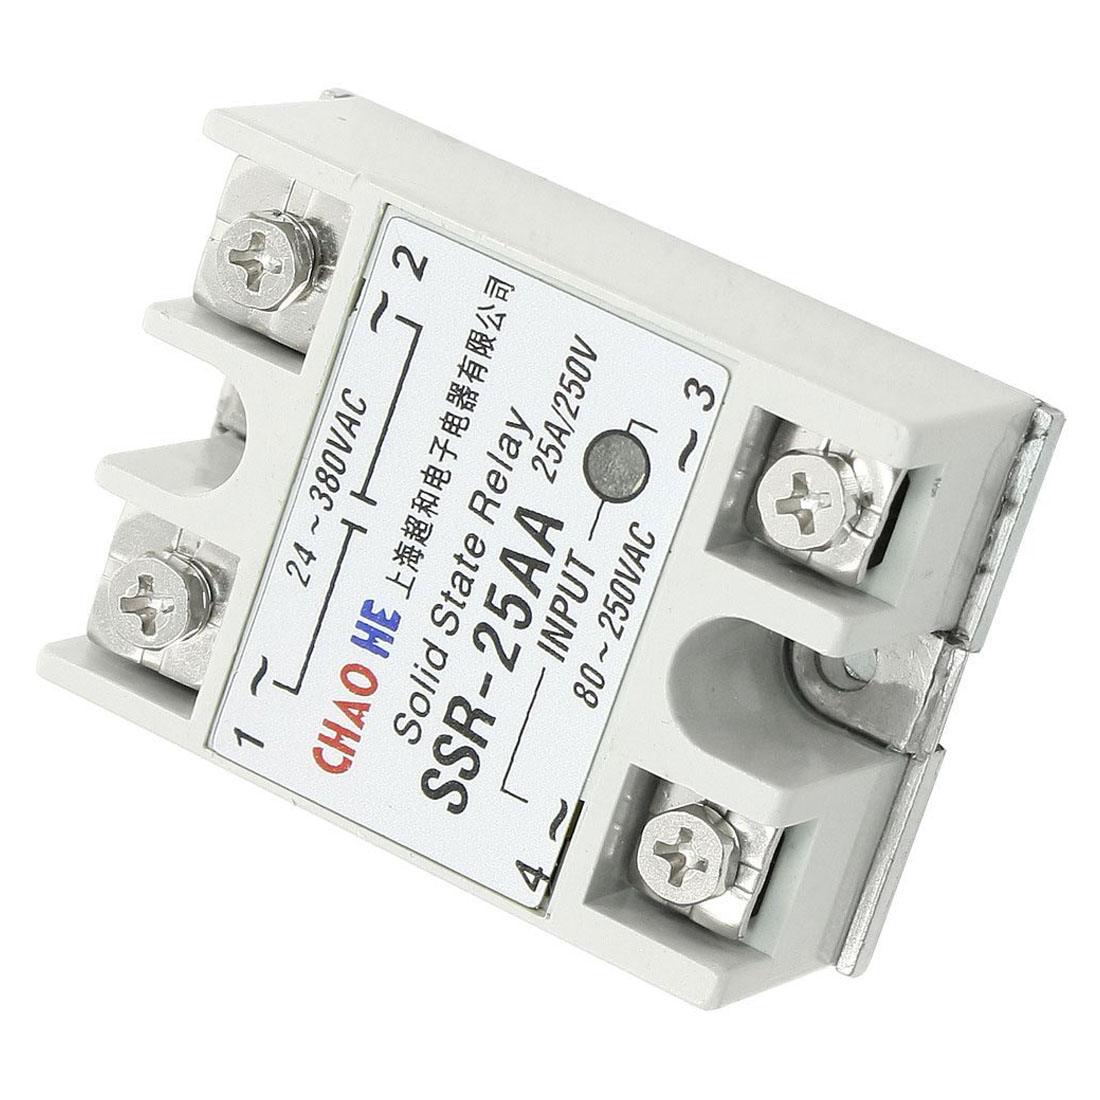 Chaohe Temperature Contoller 4 Terminals Solid State Relay Ssr 25 Aa Finder Product Name Relaytype Rated Current 25ainput Ac 80 250v Output 24 380vrelay Size 63 X 45 23cm 18